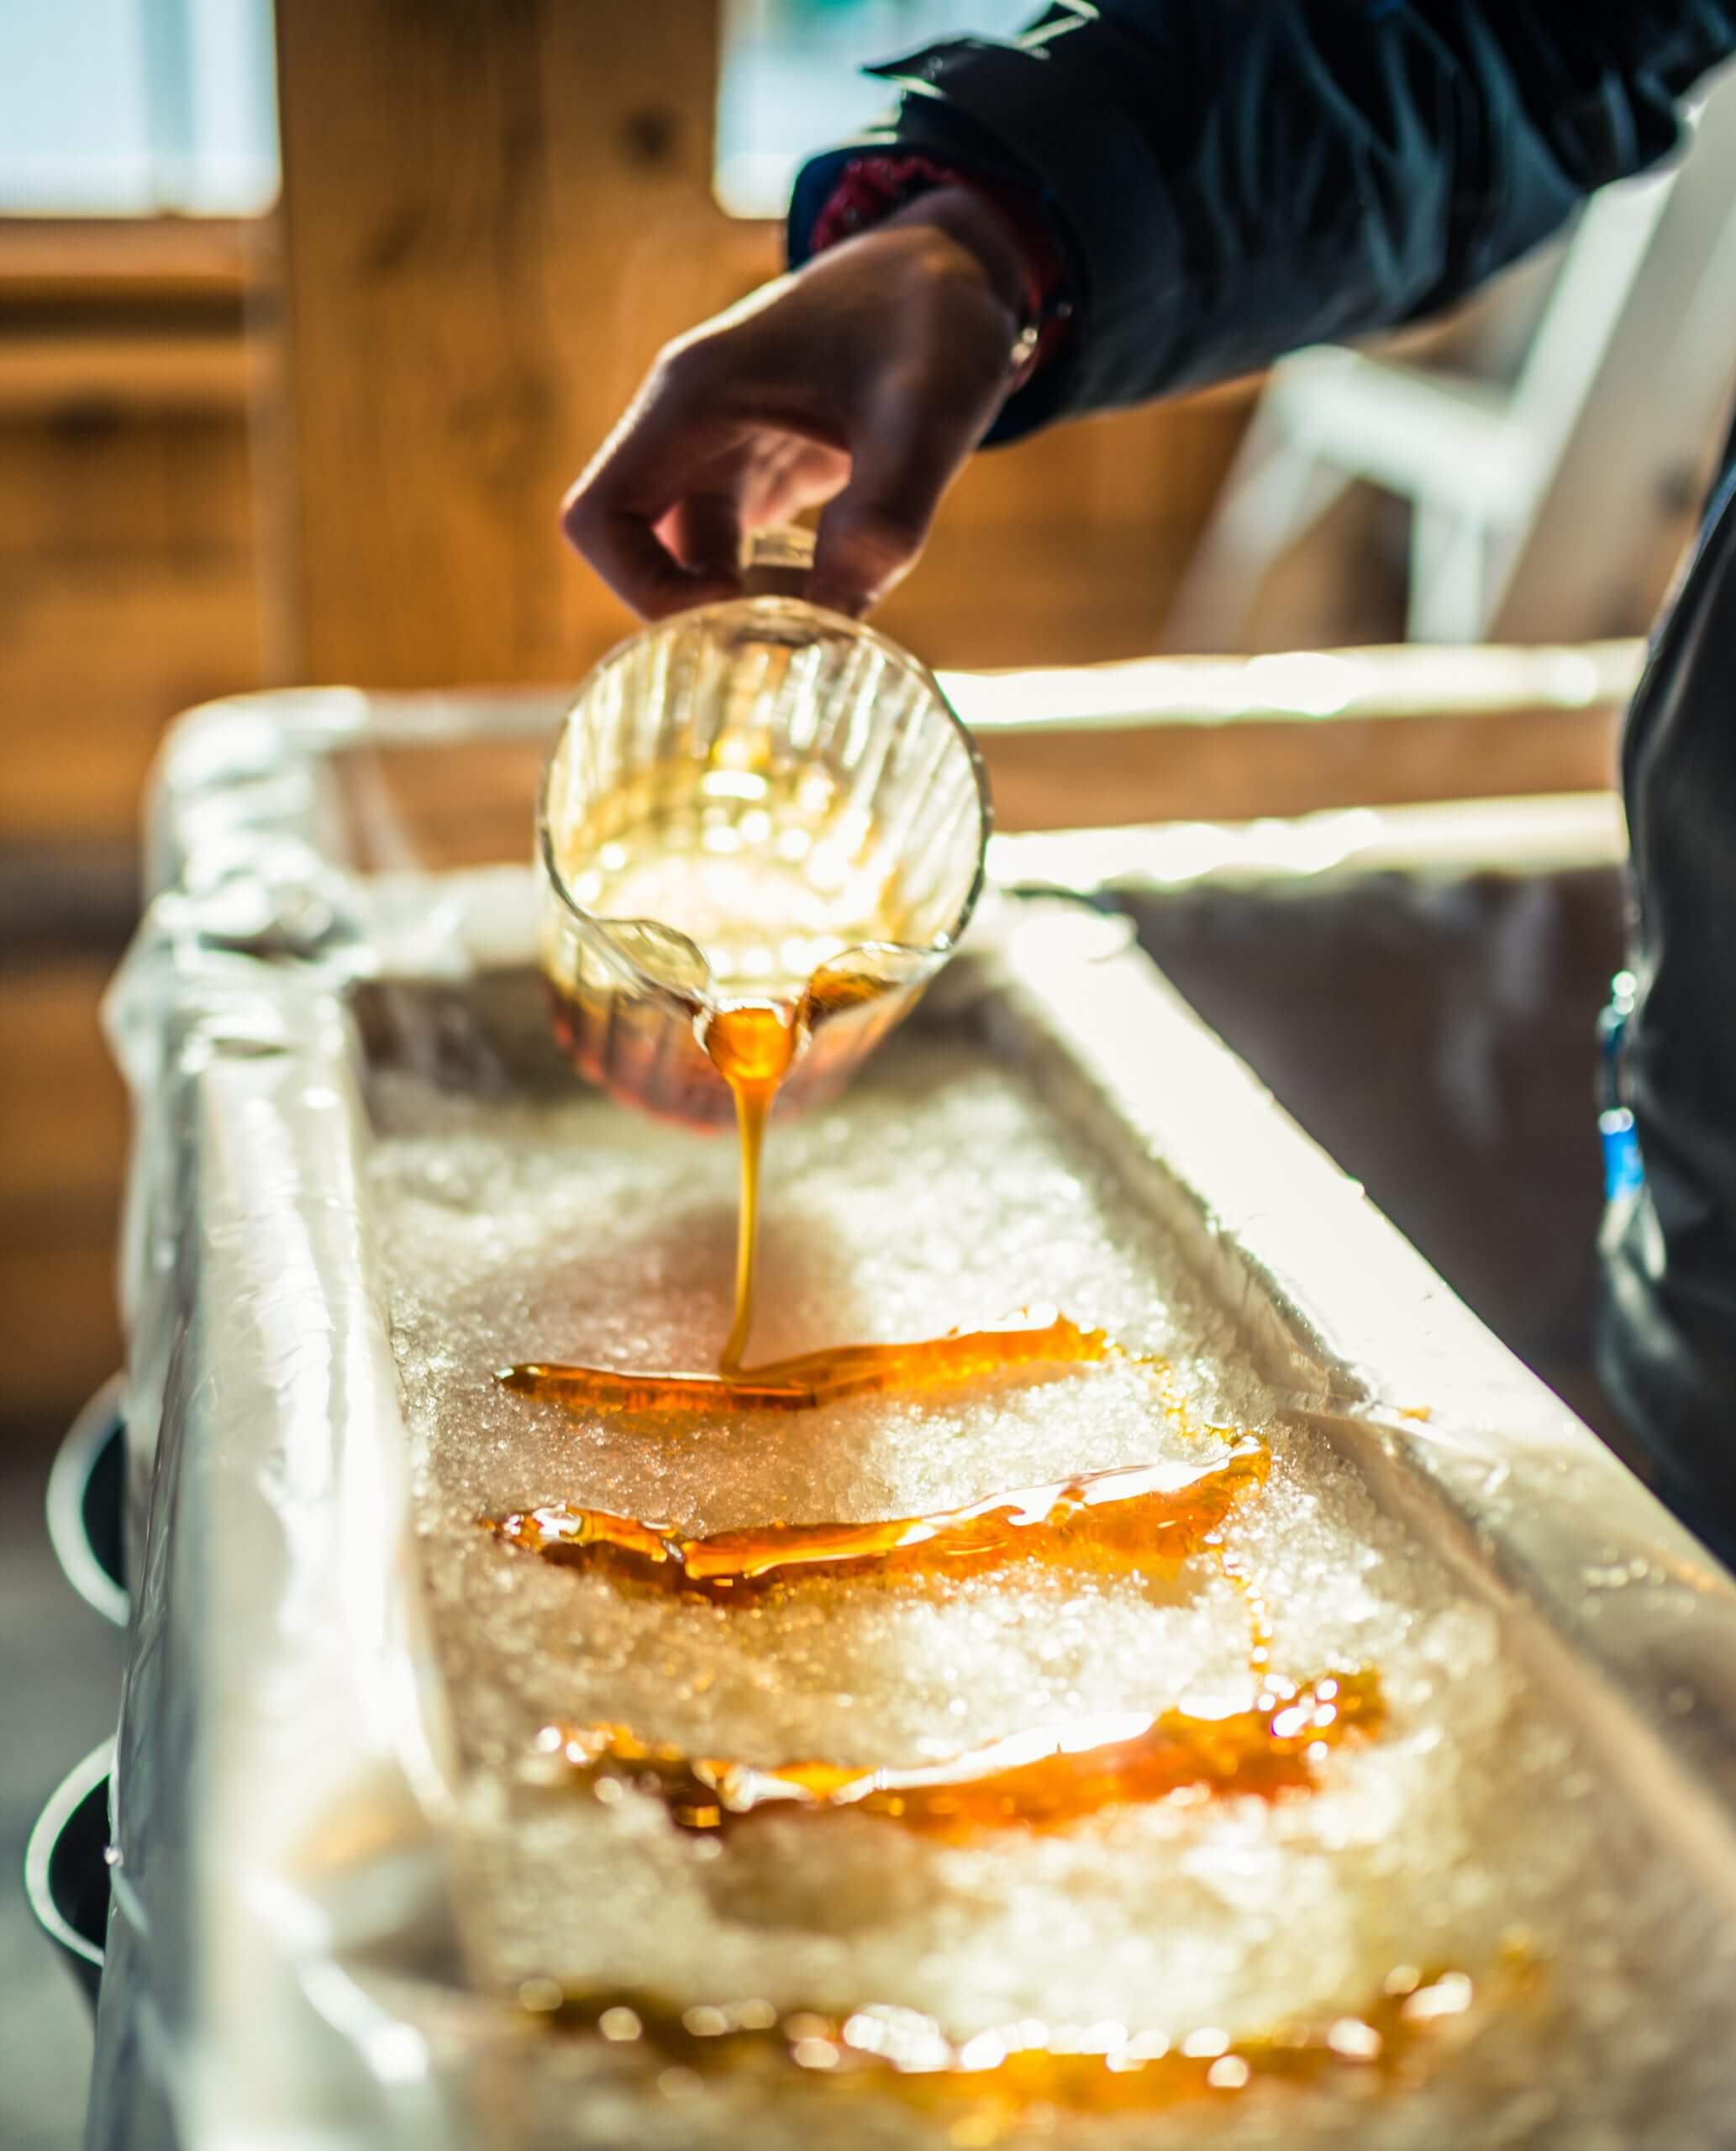 A close-up of a person gently pouring rows of syrup into packed snow for a sweet treat.